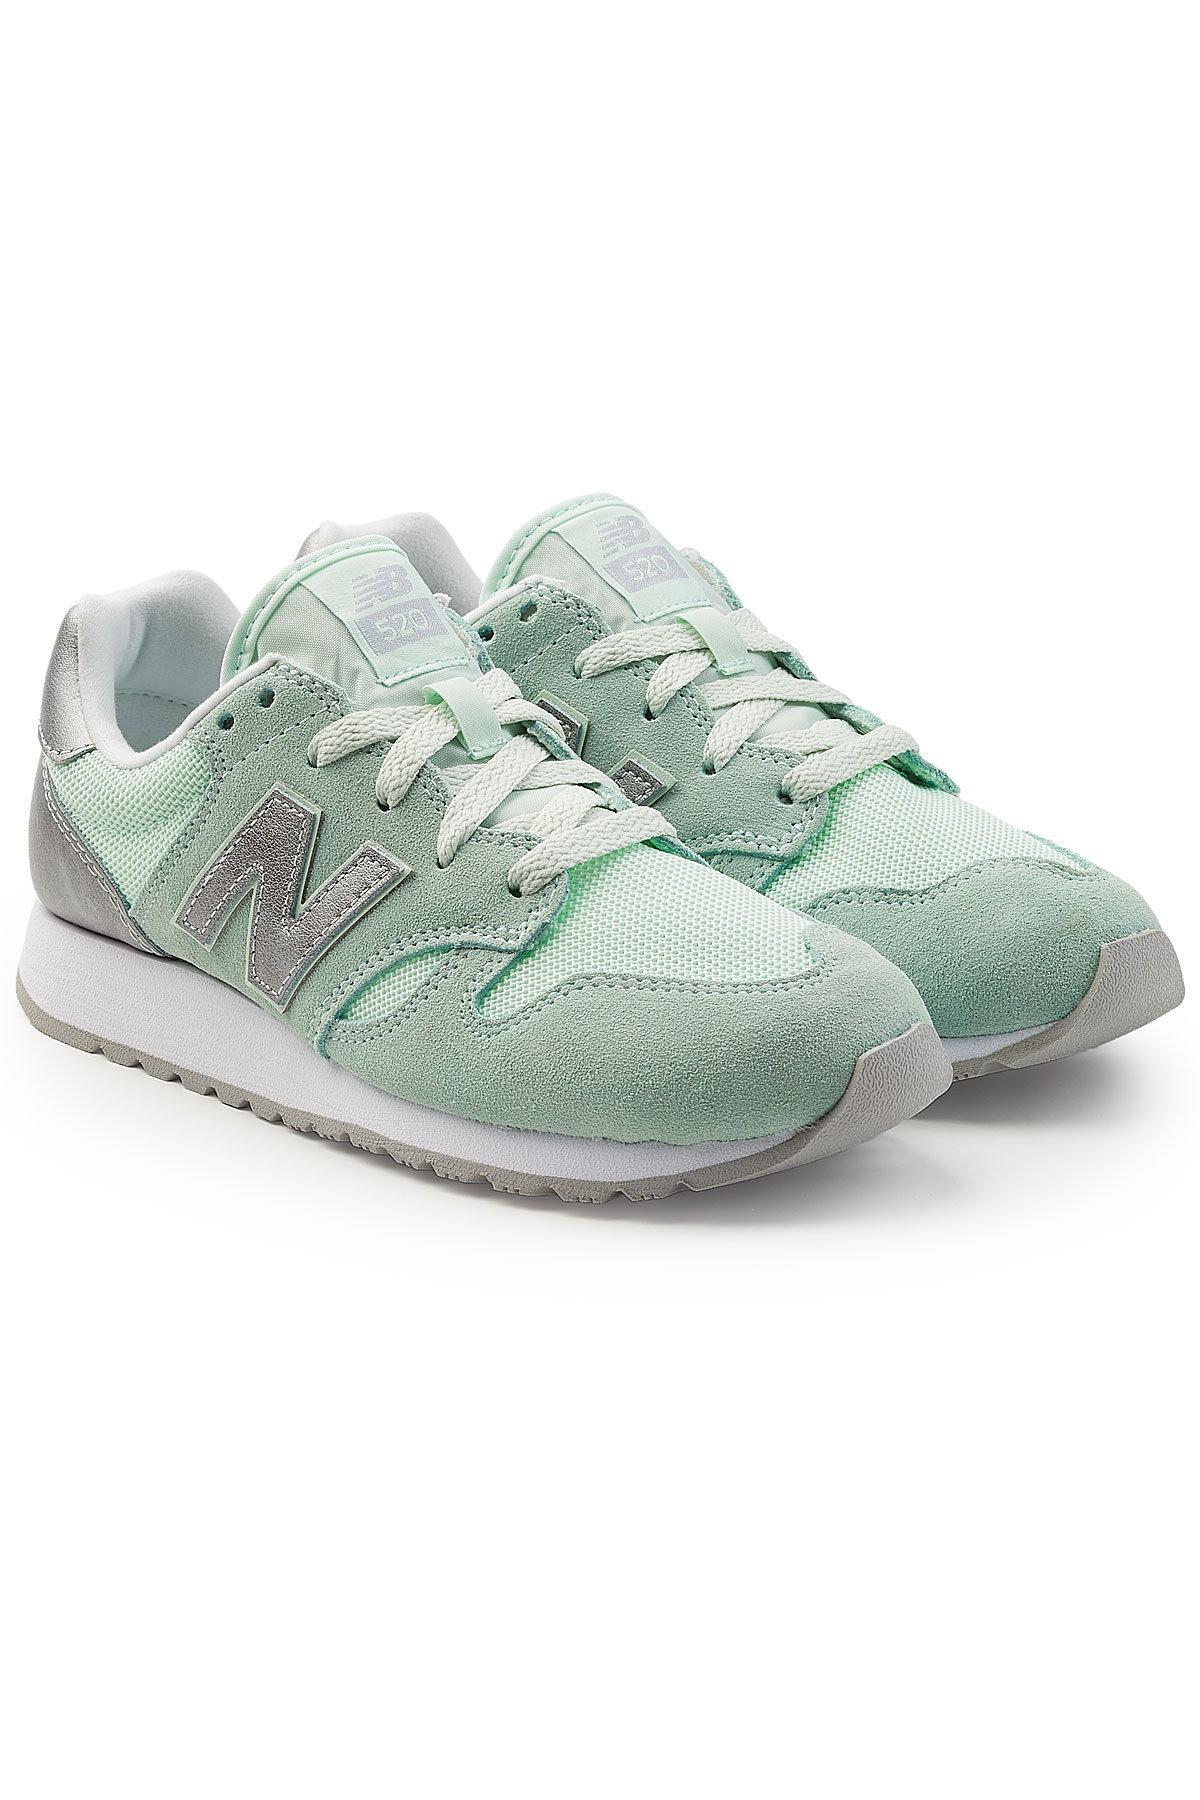 New Balance 520 Sneakers With Suede In Green